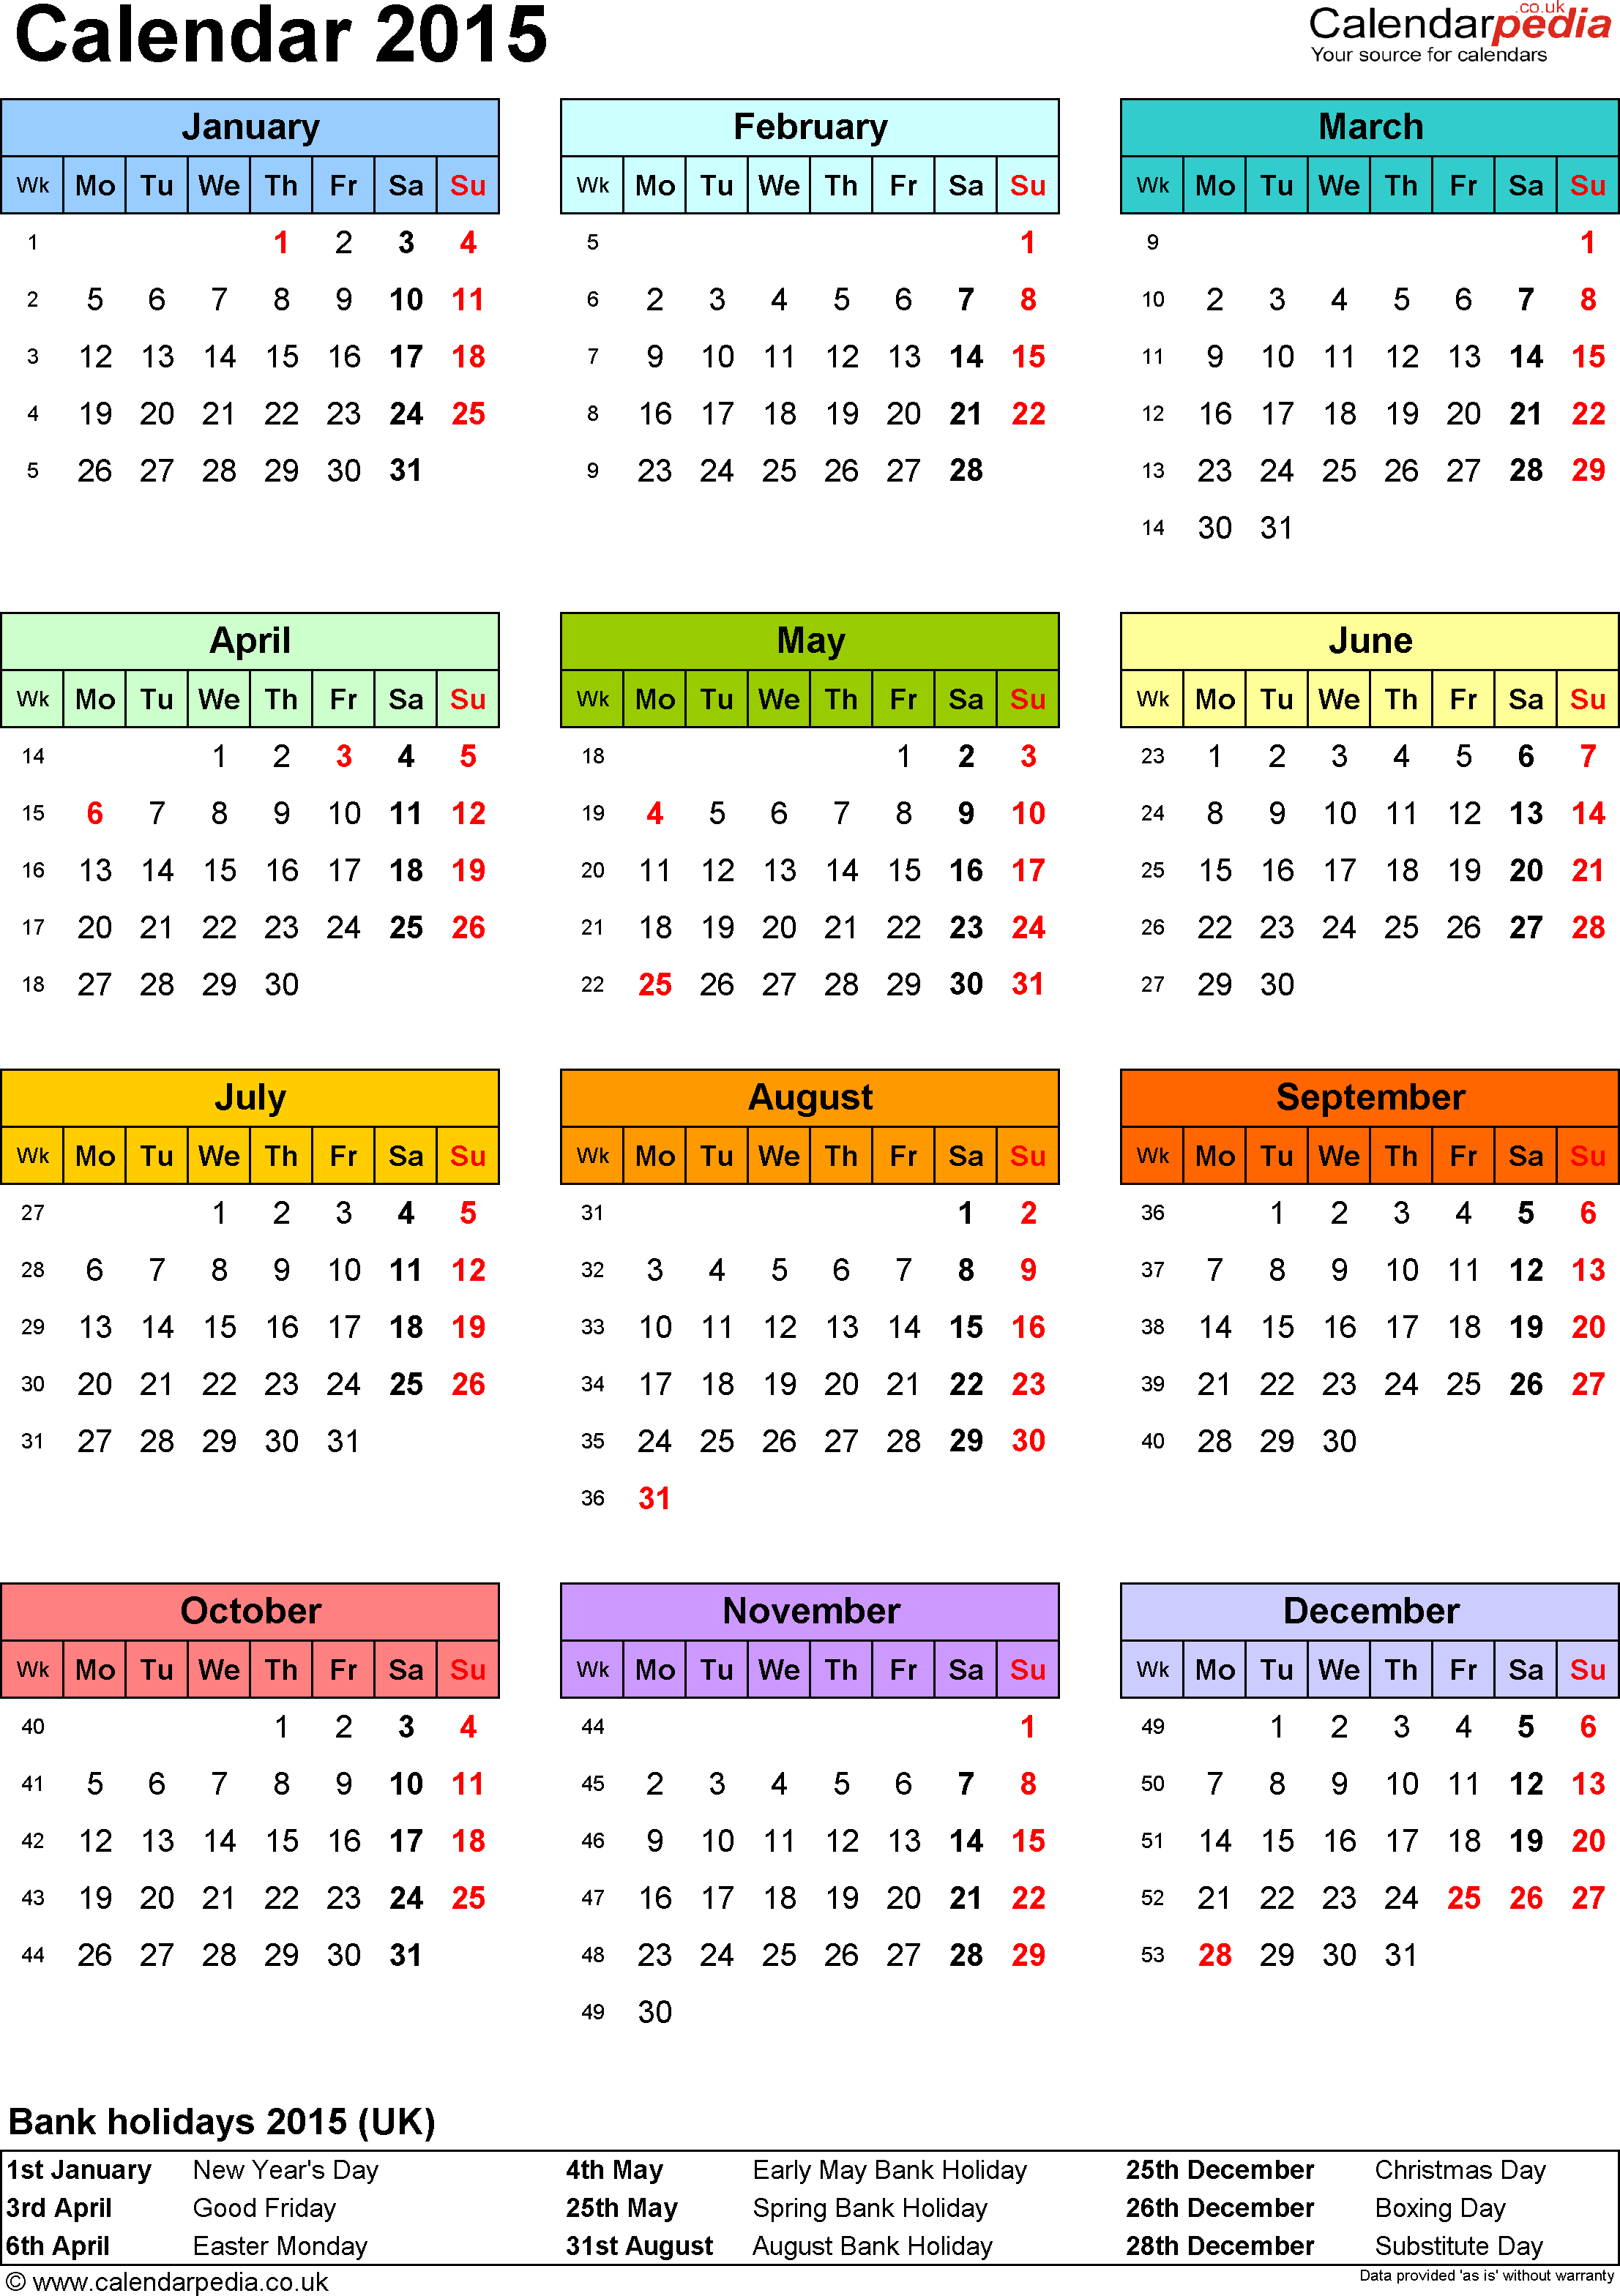 Download Template 14: Yearly calendar 2015 as PDF template, portrait orientation, year overview in colour, one A4 page